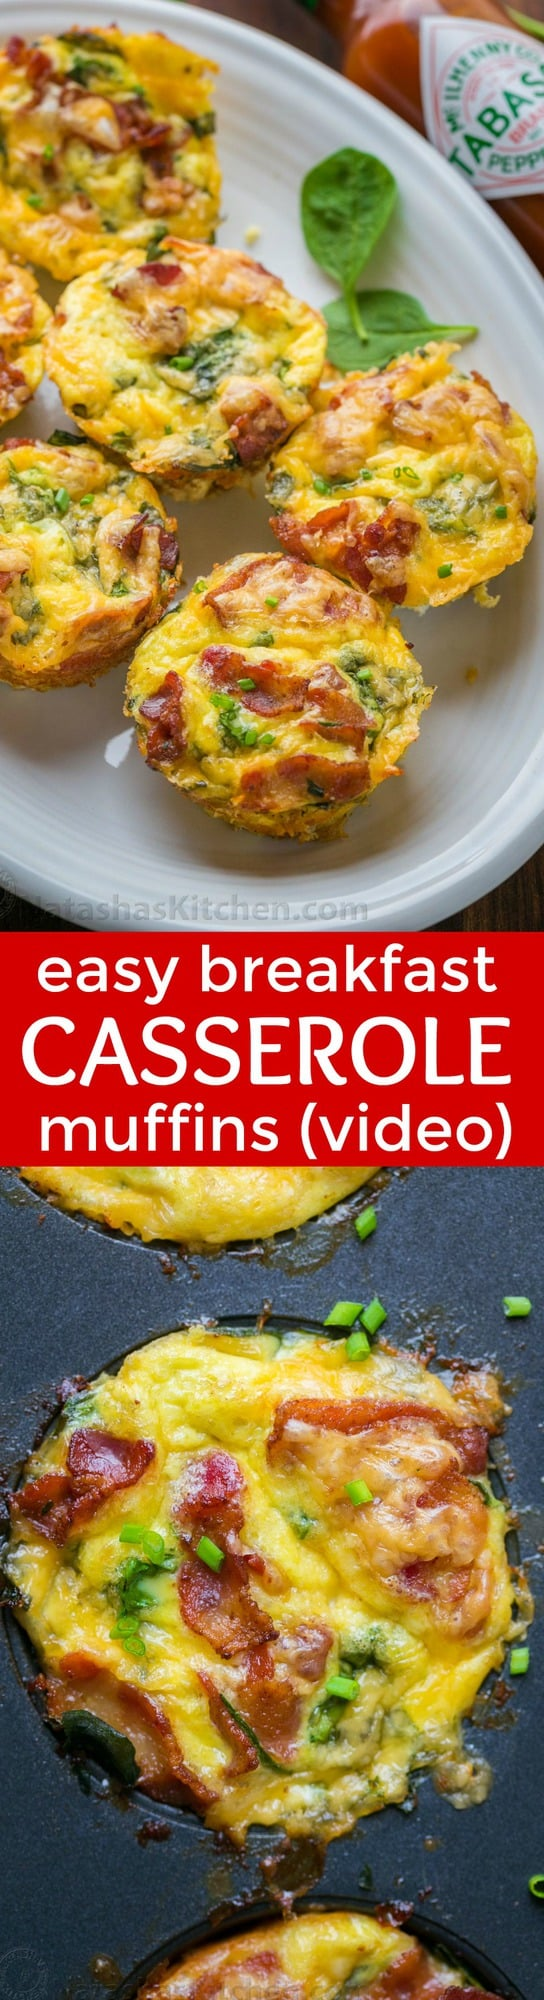 """""""Breakfast casserole muffins come together quickly. Loaded with potato, spinach, eggs, cheese and crisp bacon. Freezer friendly make-ahead breakfast muffins! 